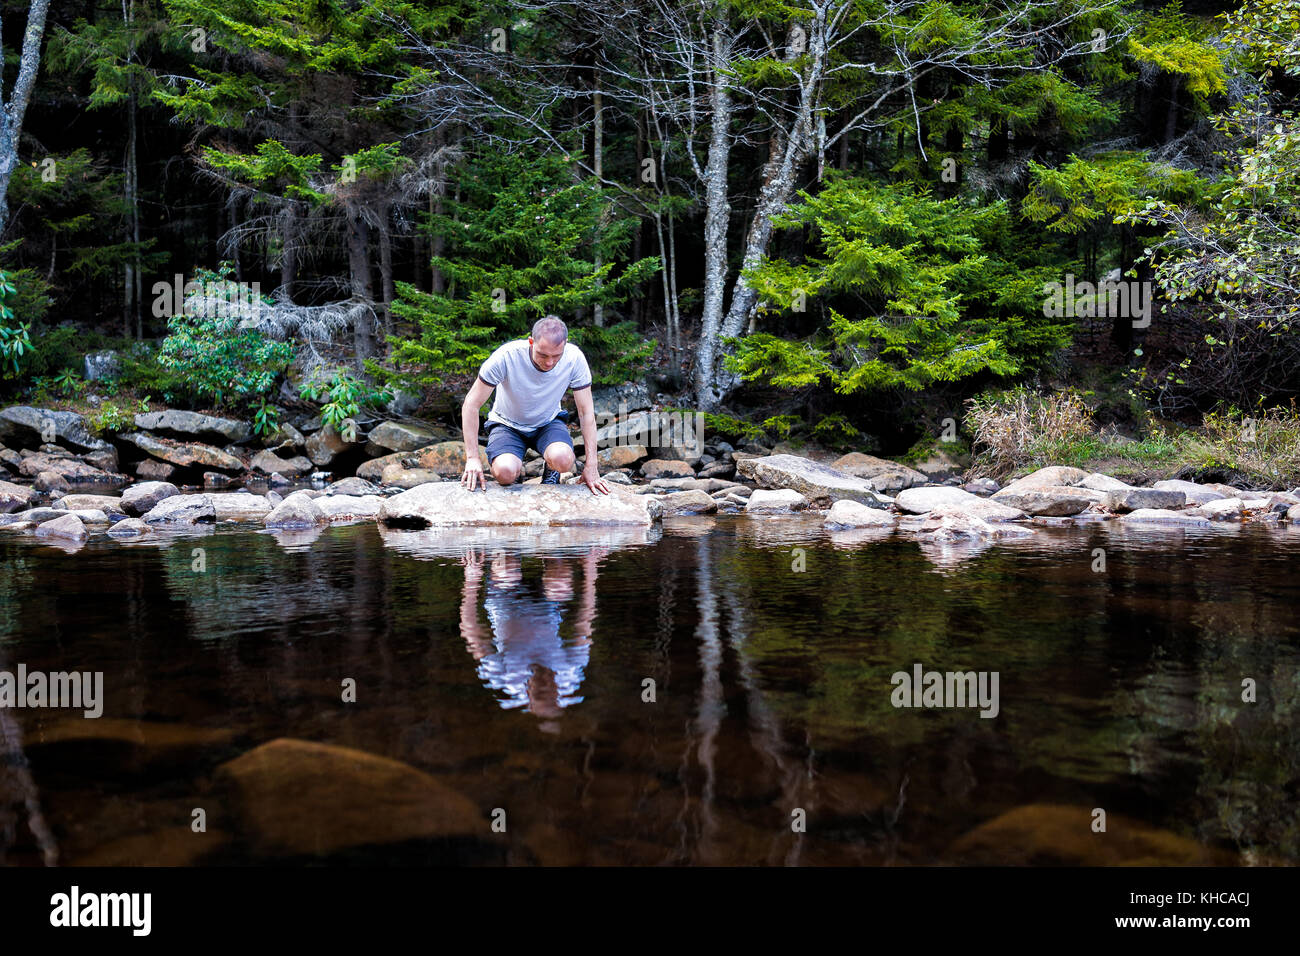 Young man looking into reflection of dark water on peaceful, calm Red Creek river in Dolly Sods, West Virginia - Stock Image